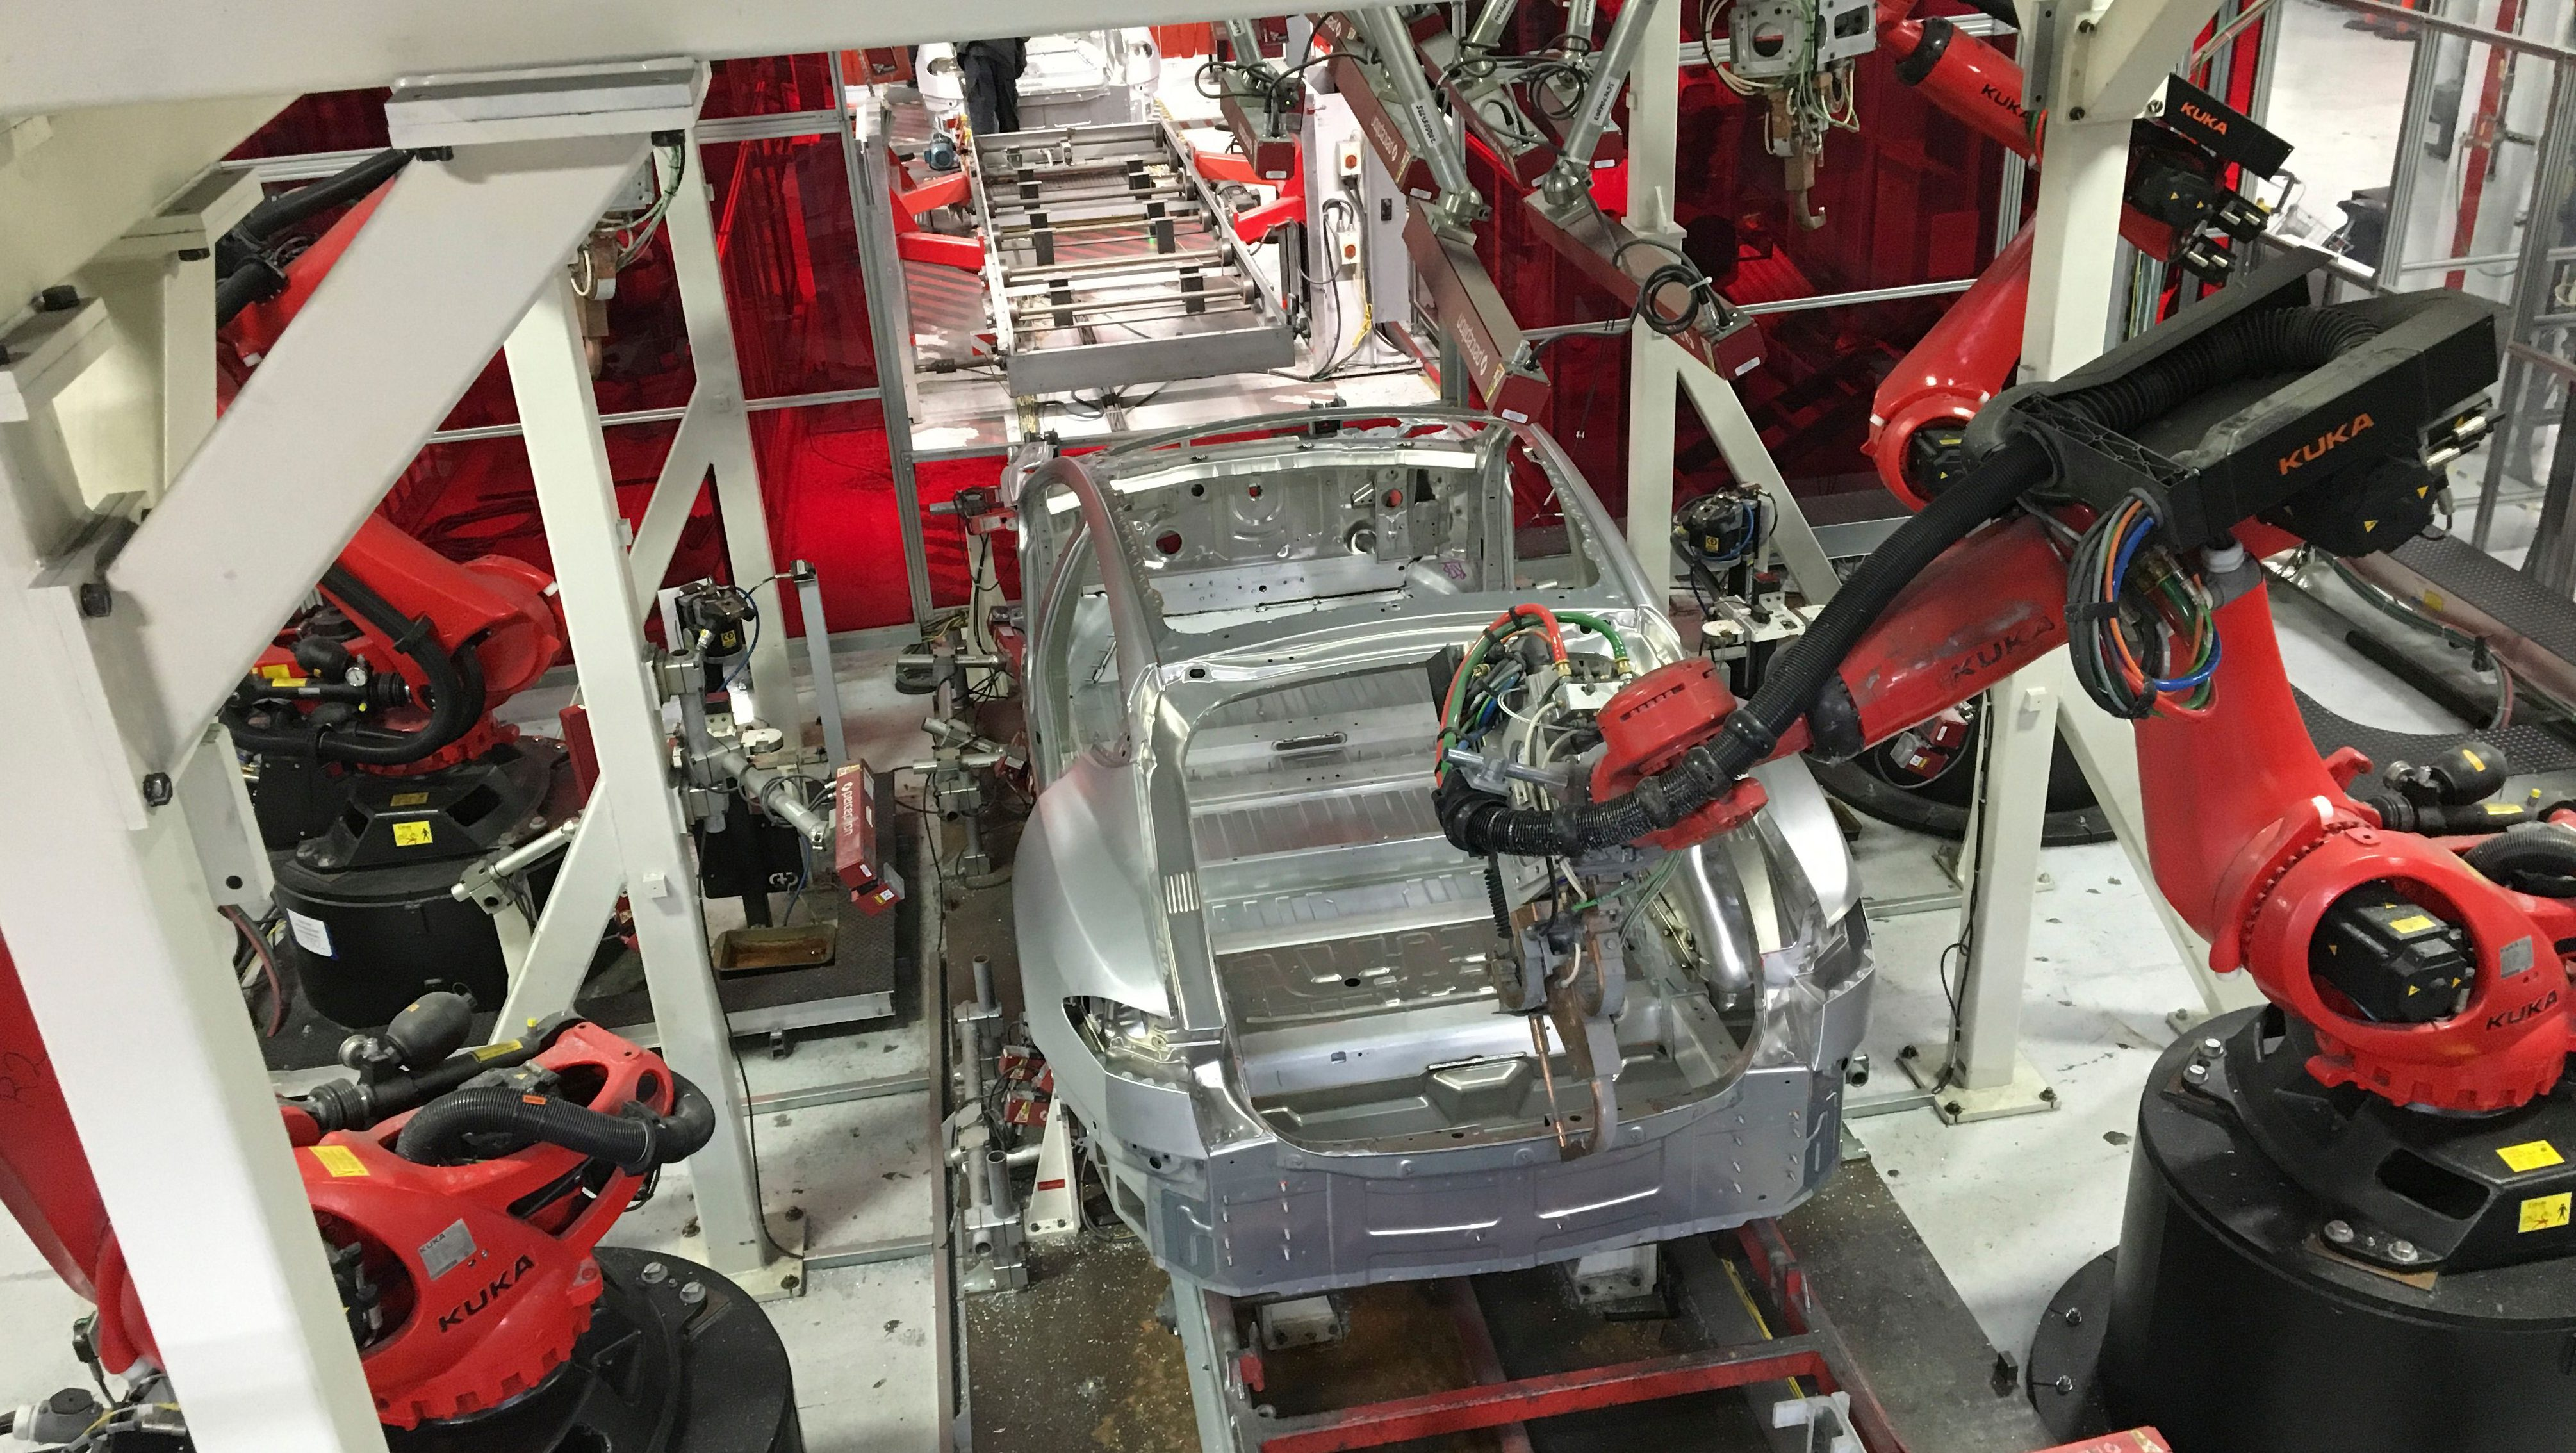 Tesla vehicles are being assembled by robots at Tesla Motors Inc factory in Fremont, California, U.S. on July 25, 2016.  REUTERS/Joseph White - TM3EC7P1LMR01